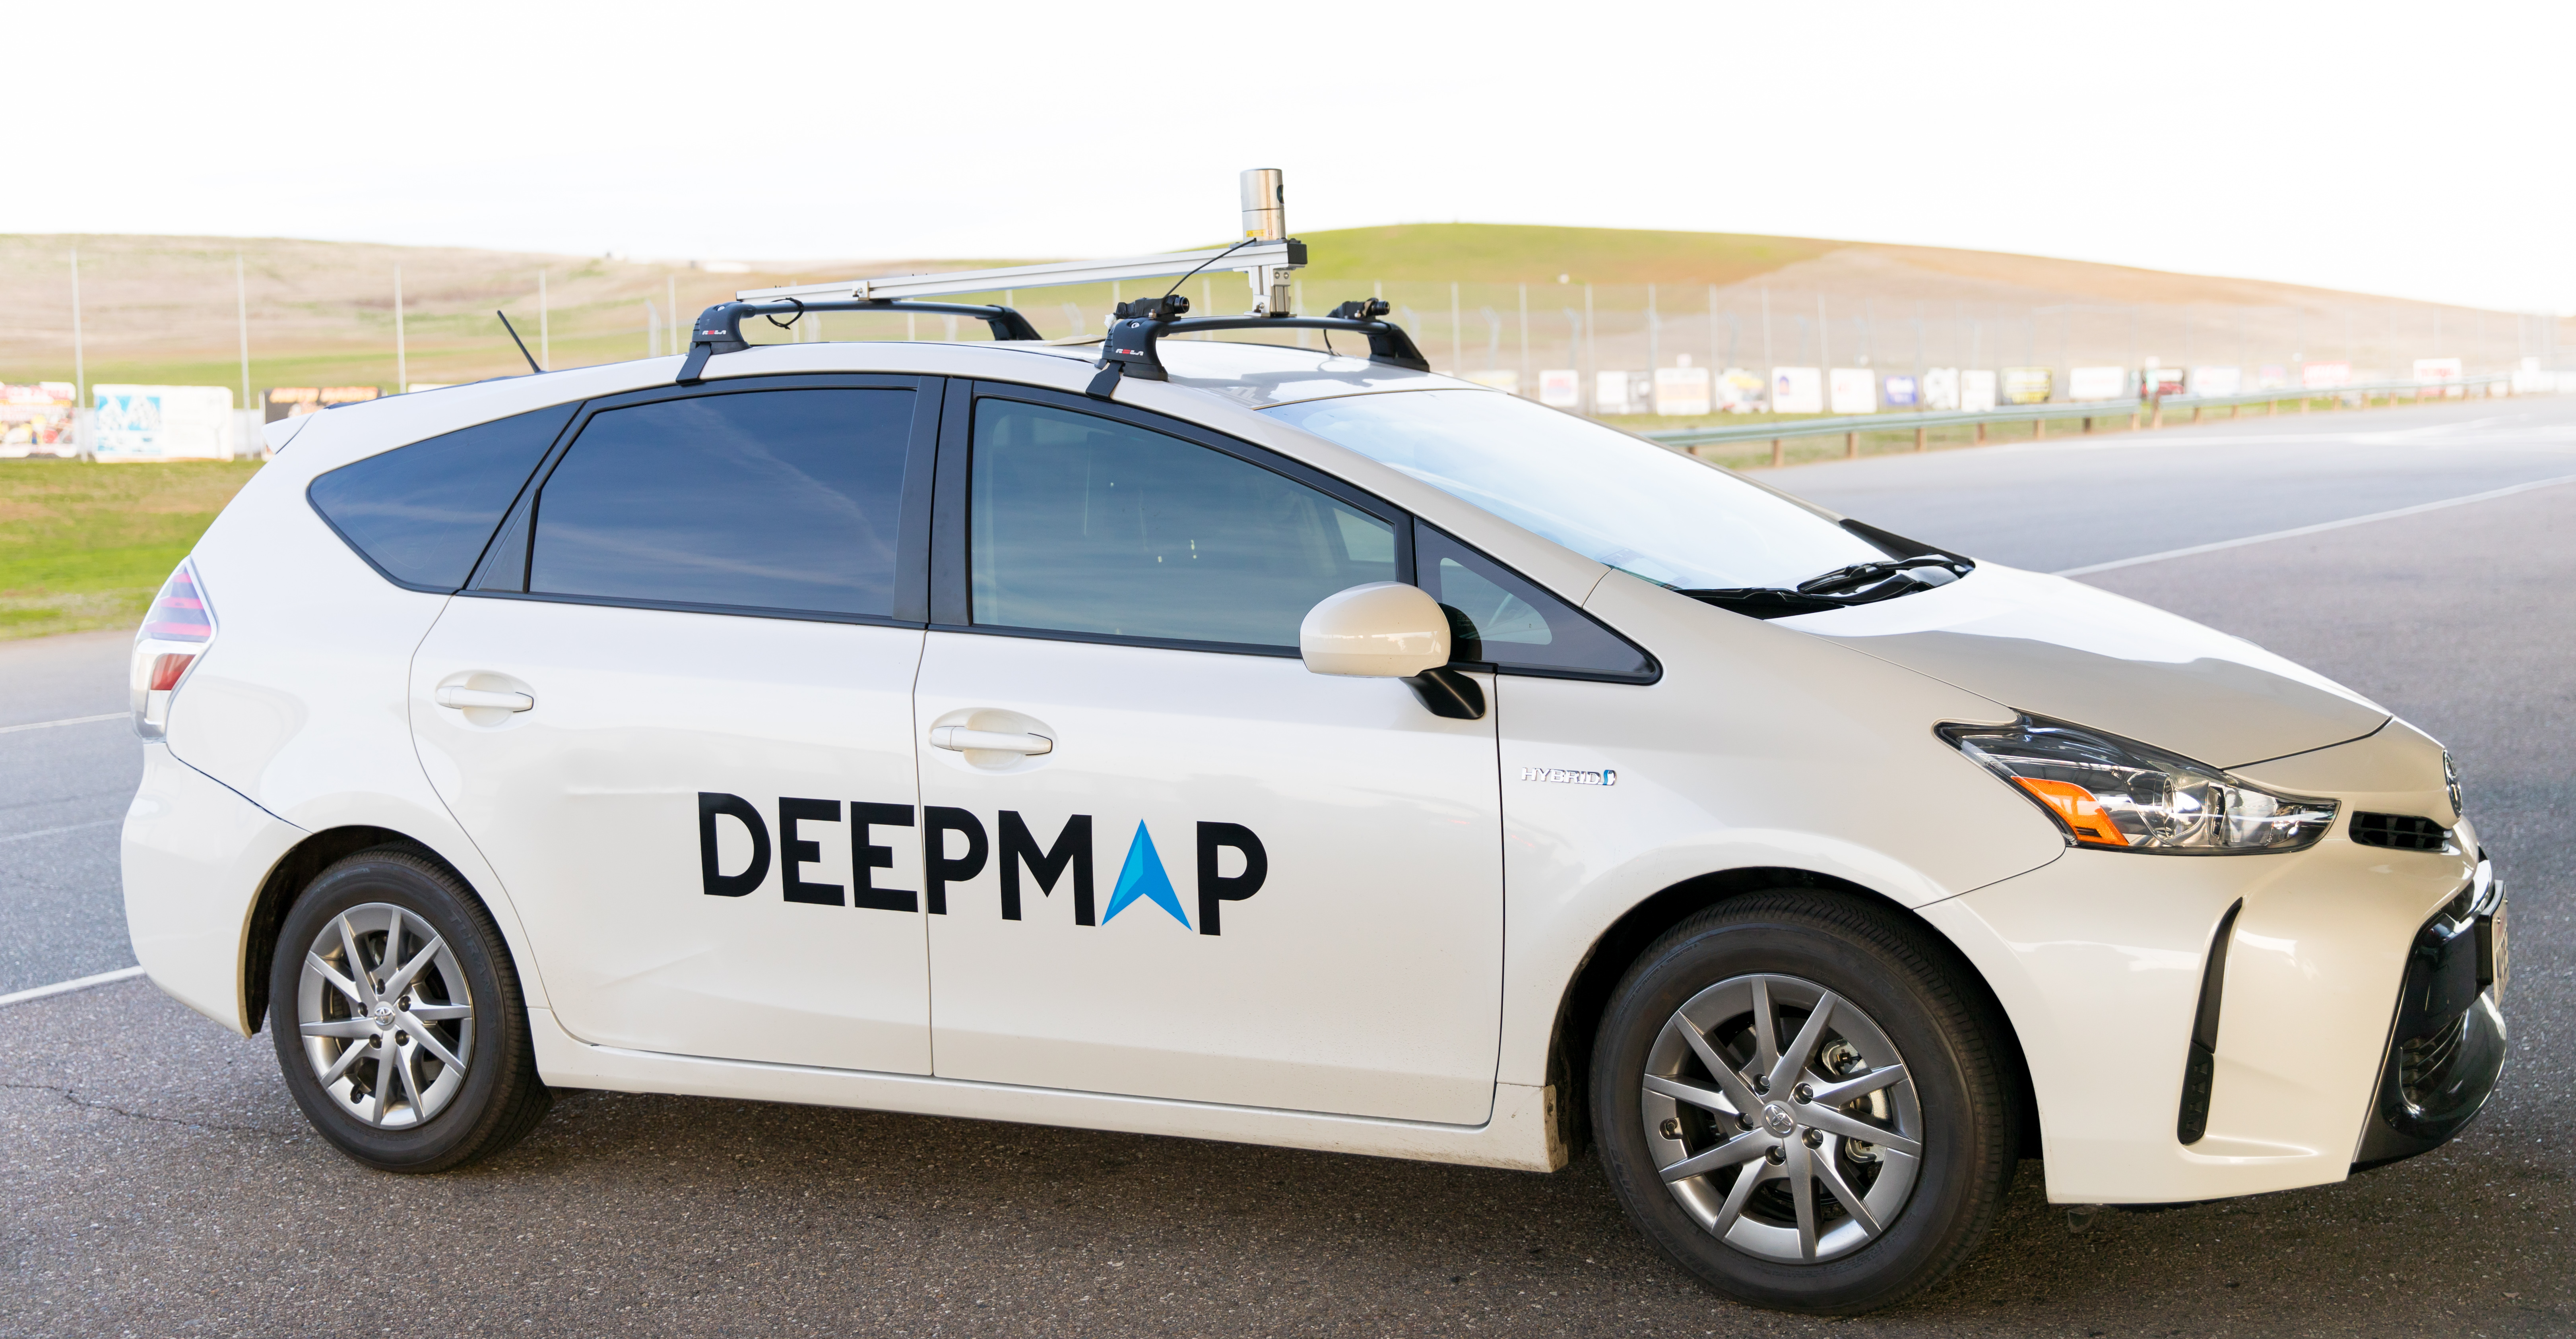 A DeepMap Mapping Vehicle